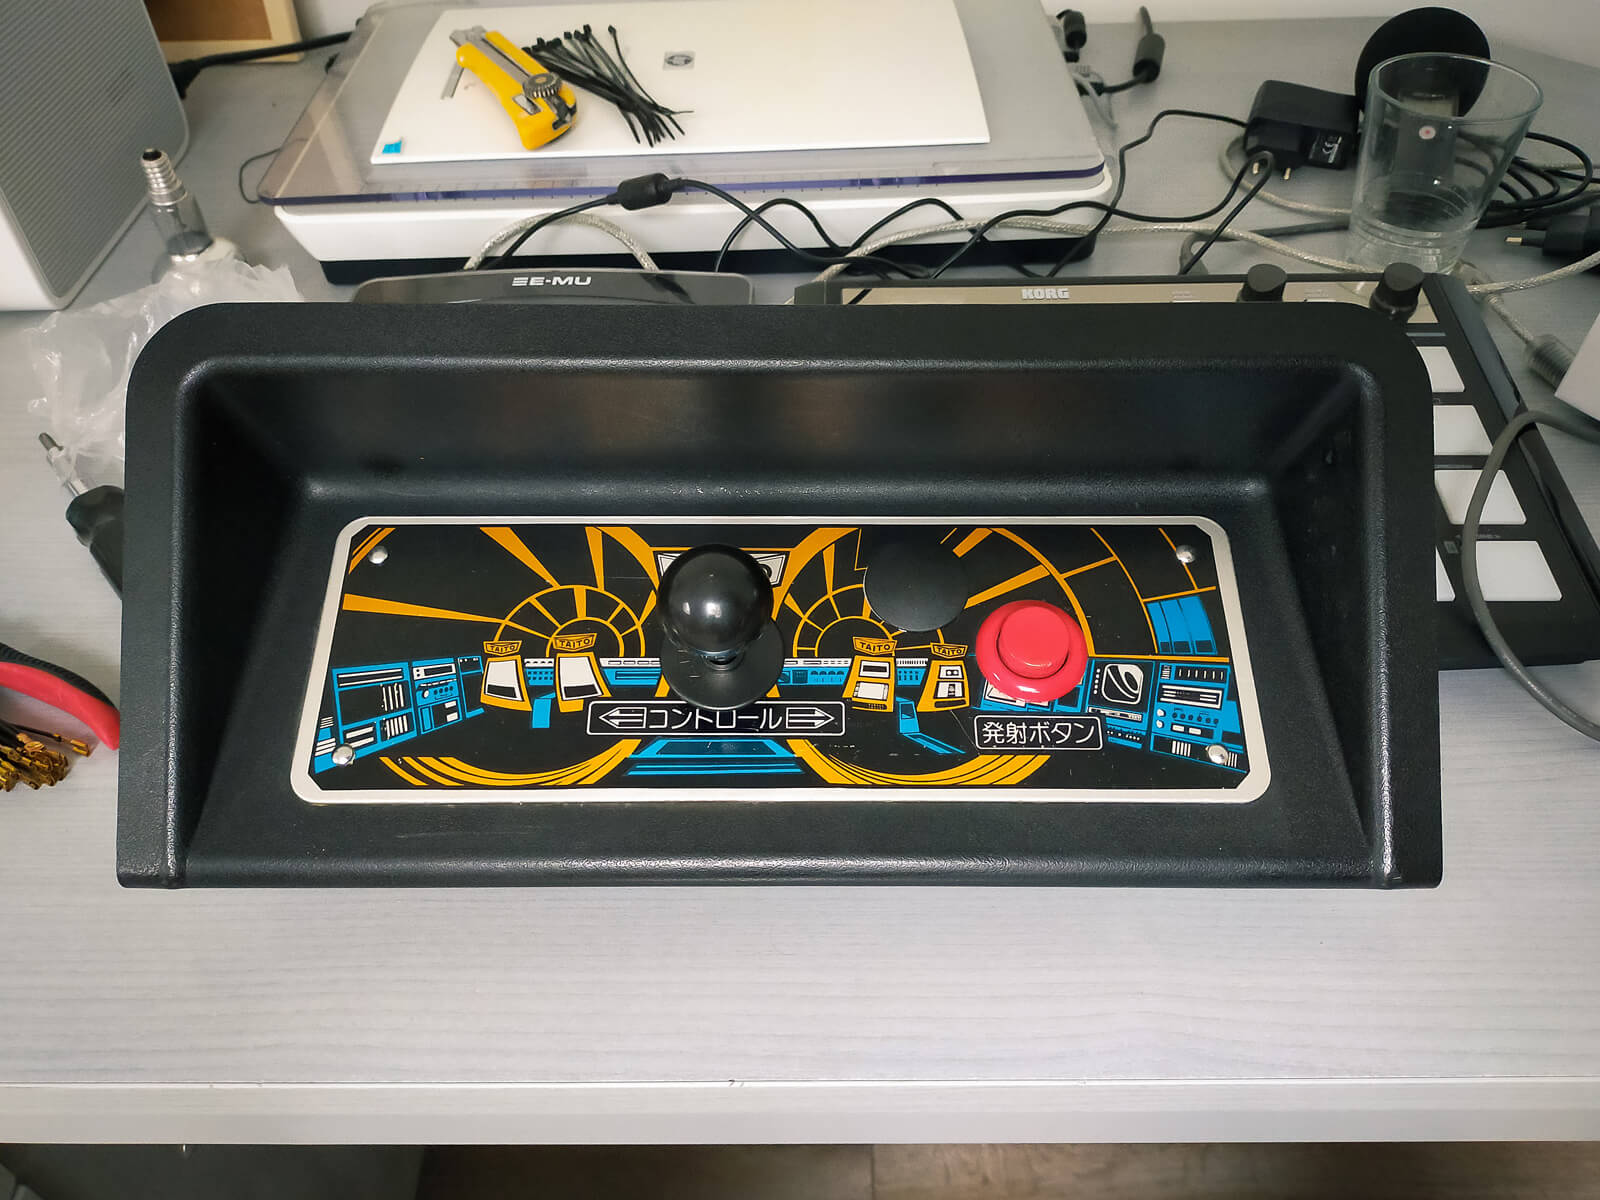 Control panel with a new joystick and button blank covering up an extra hole